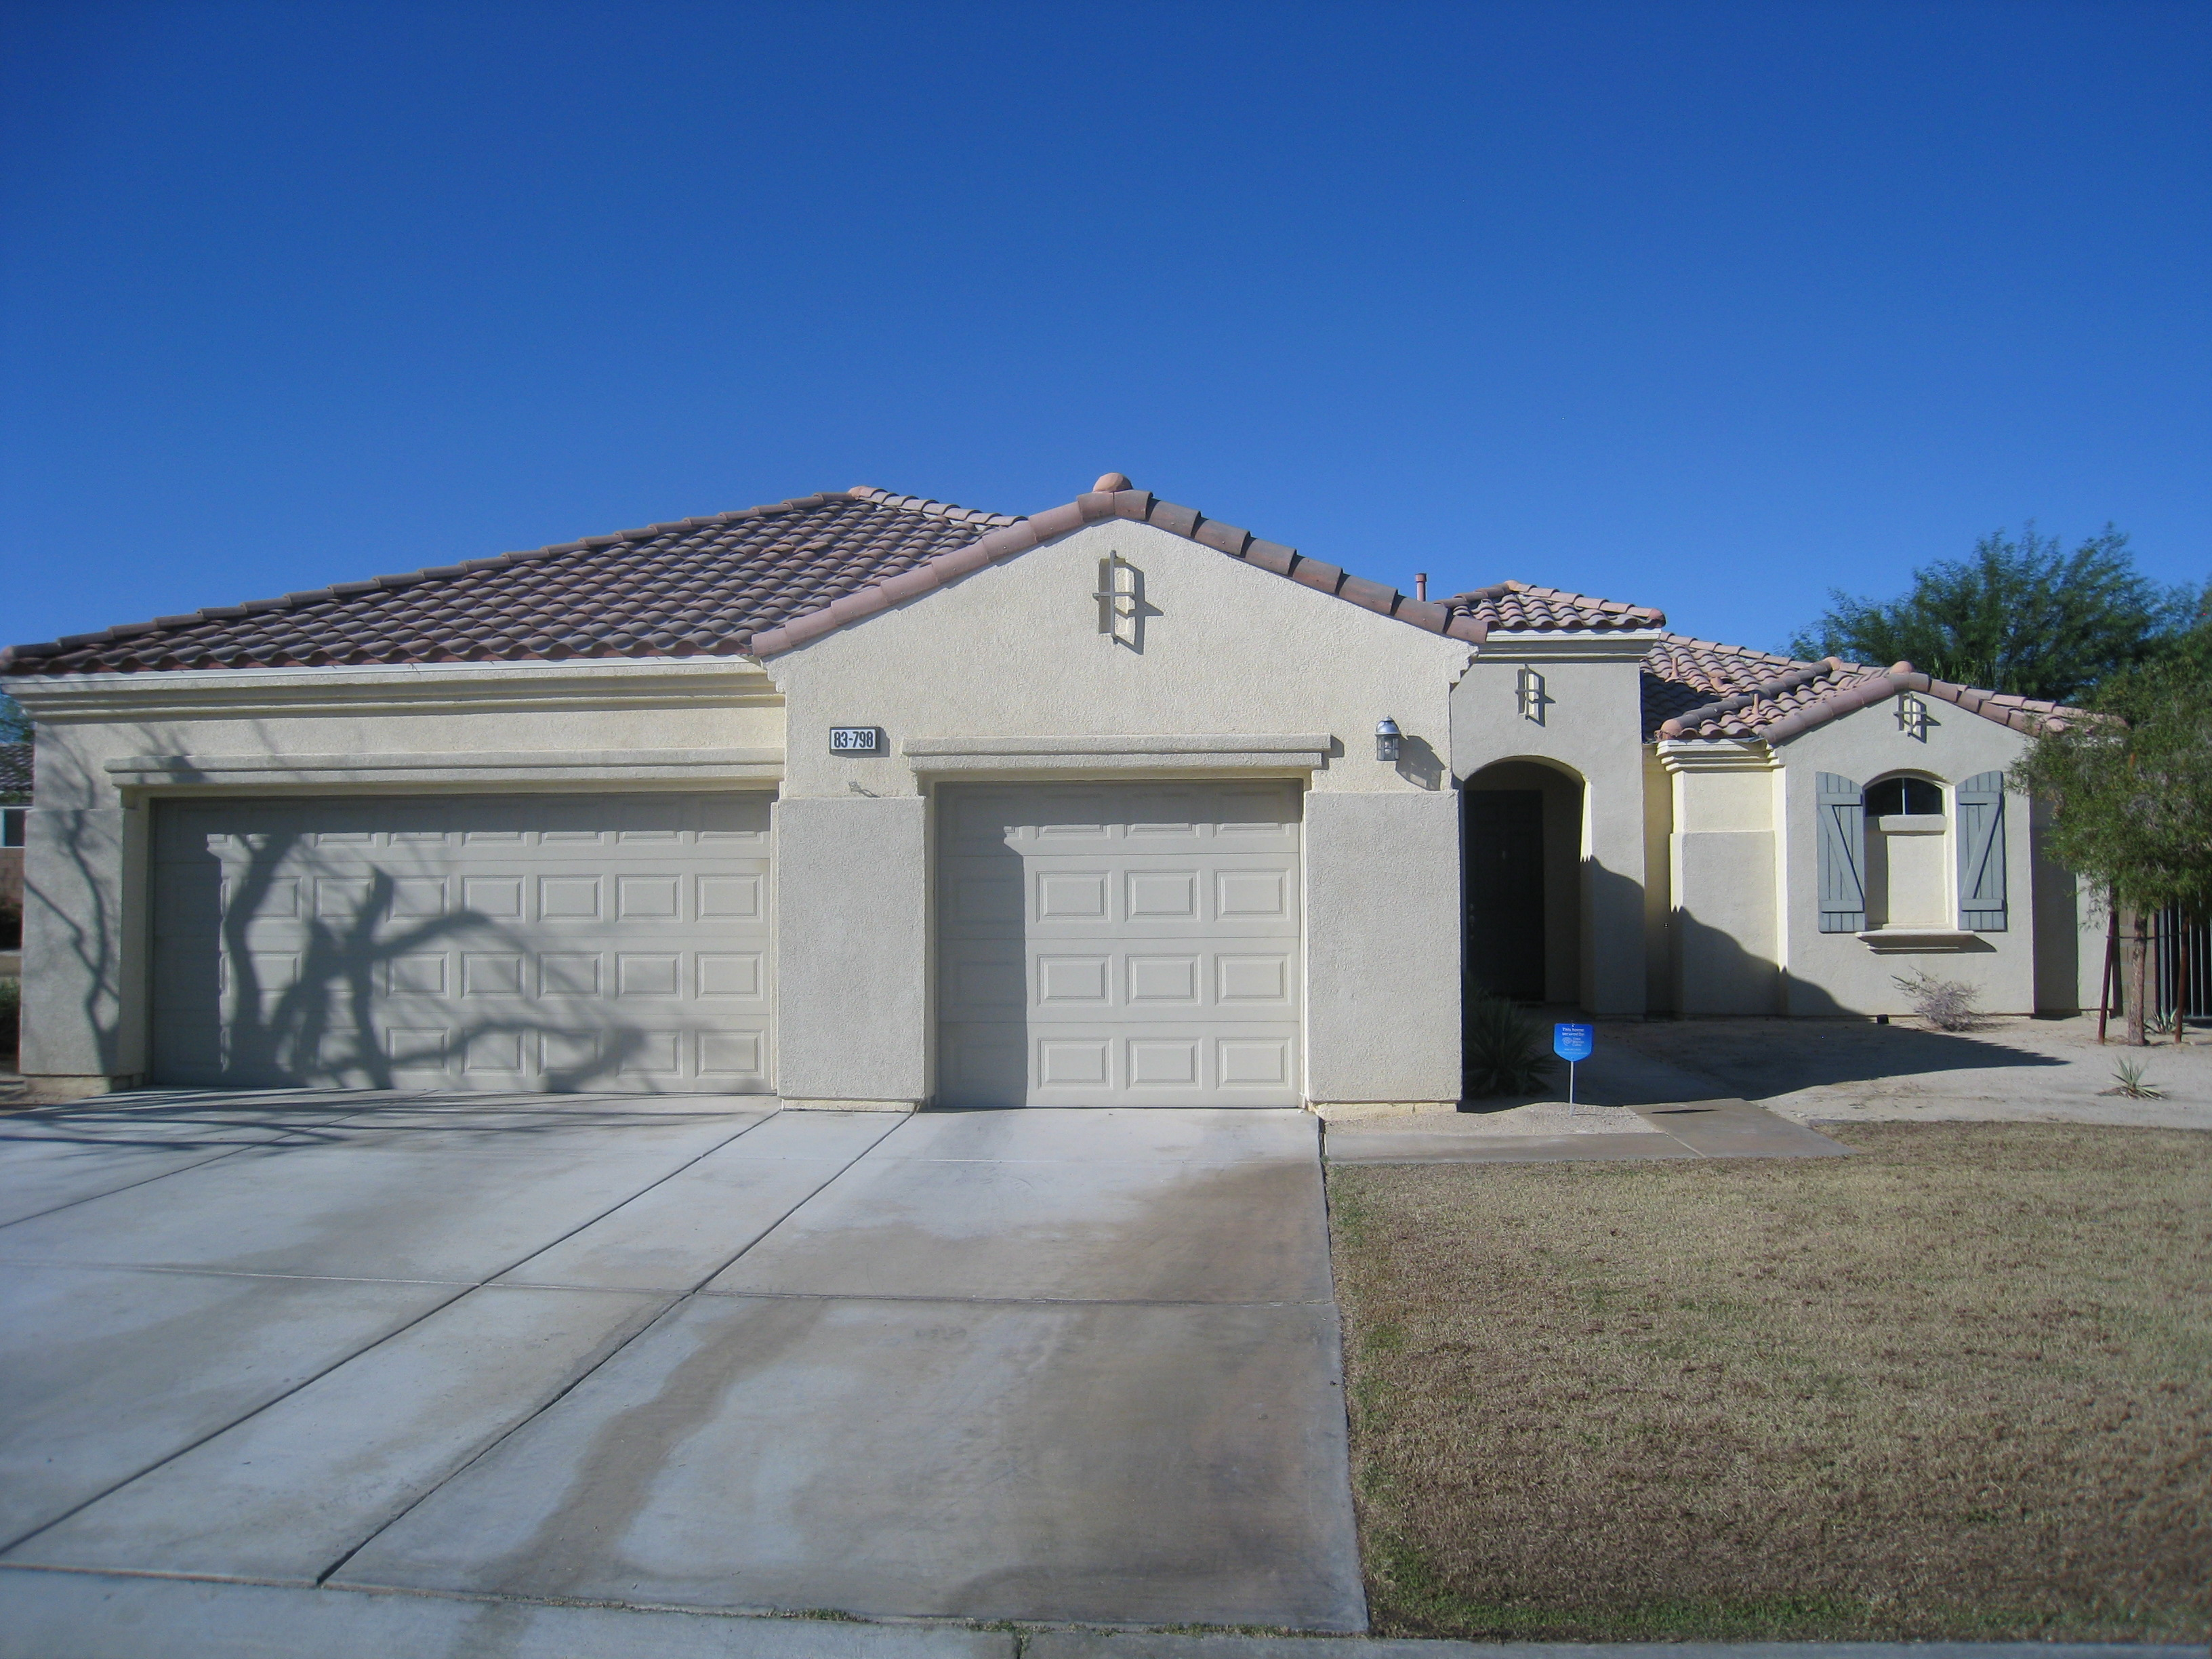 Desert collection 3 car garage home for sale indio ca for Homes with three car garages